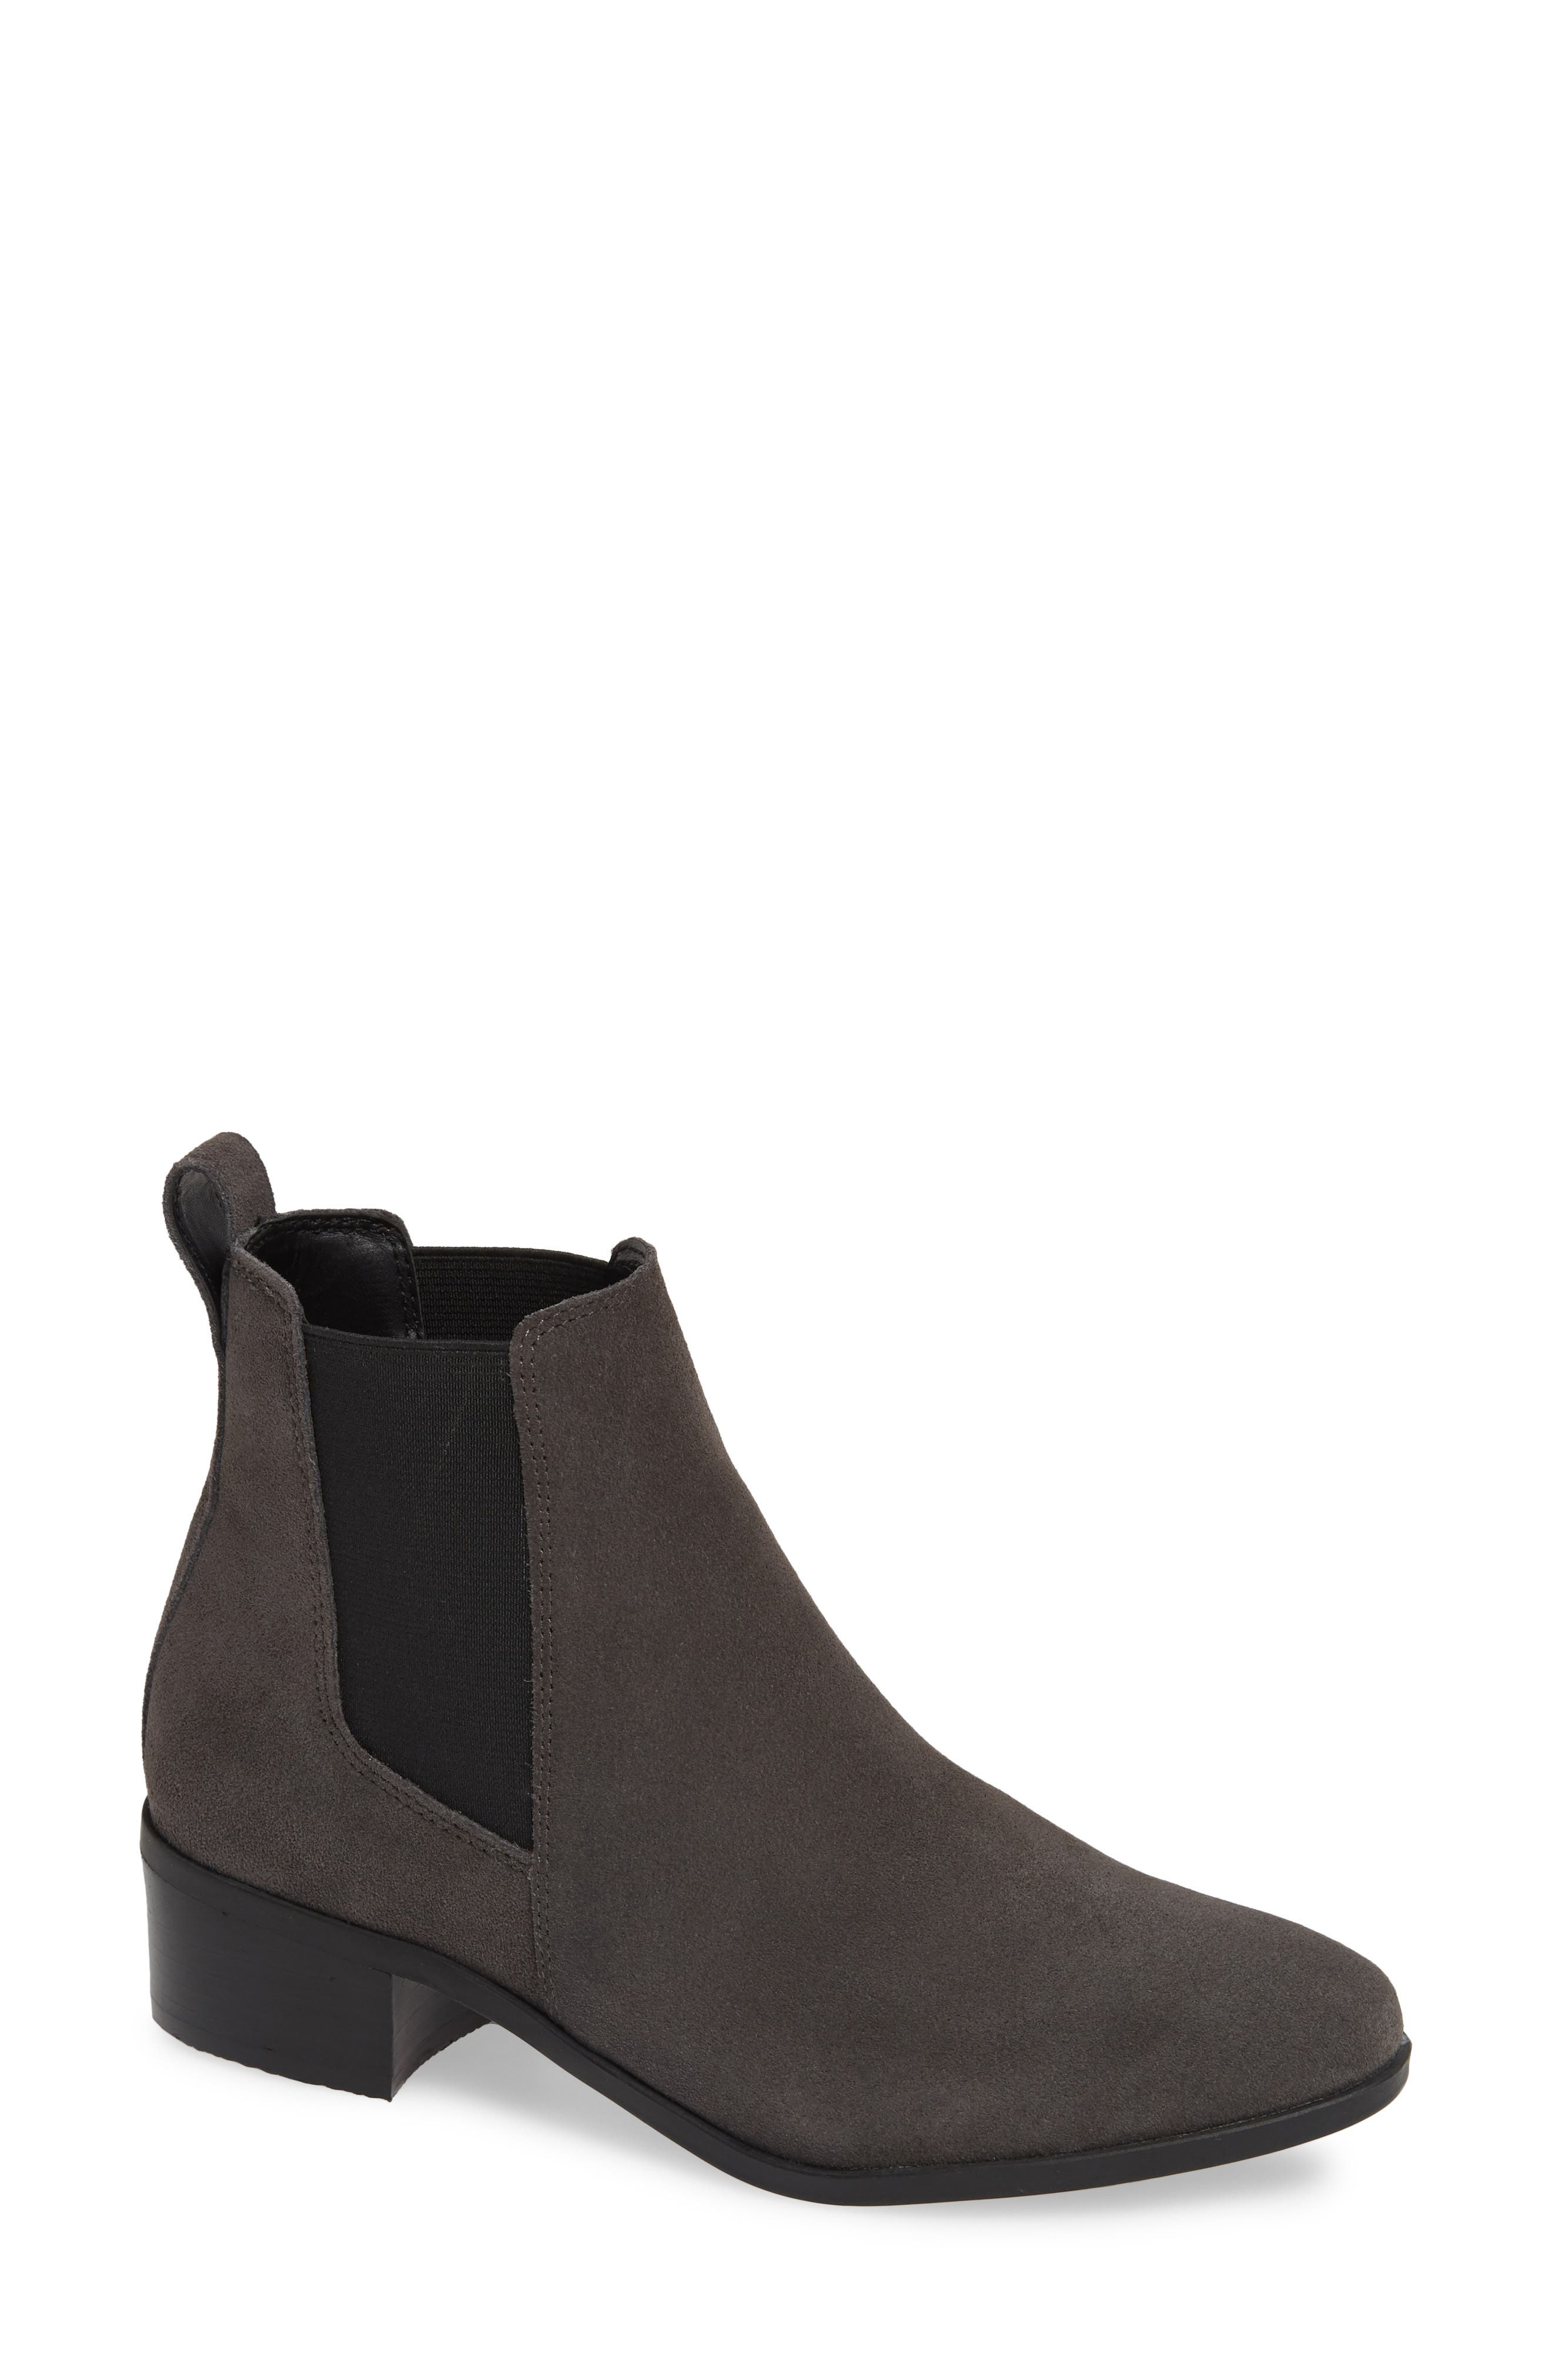 90e7323b6f3 Women s Steve Madden Booties   Ankle Boots